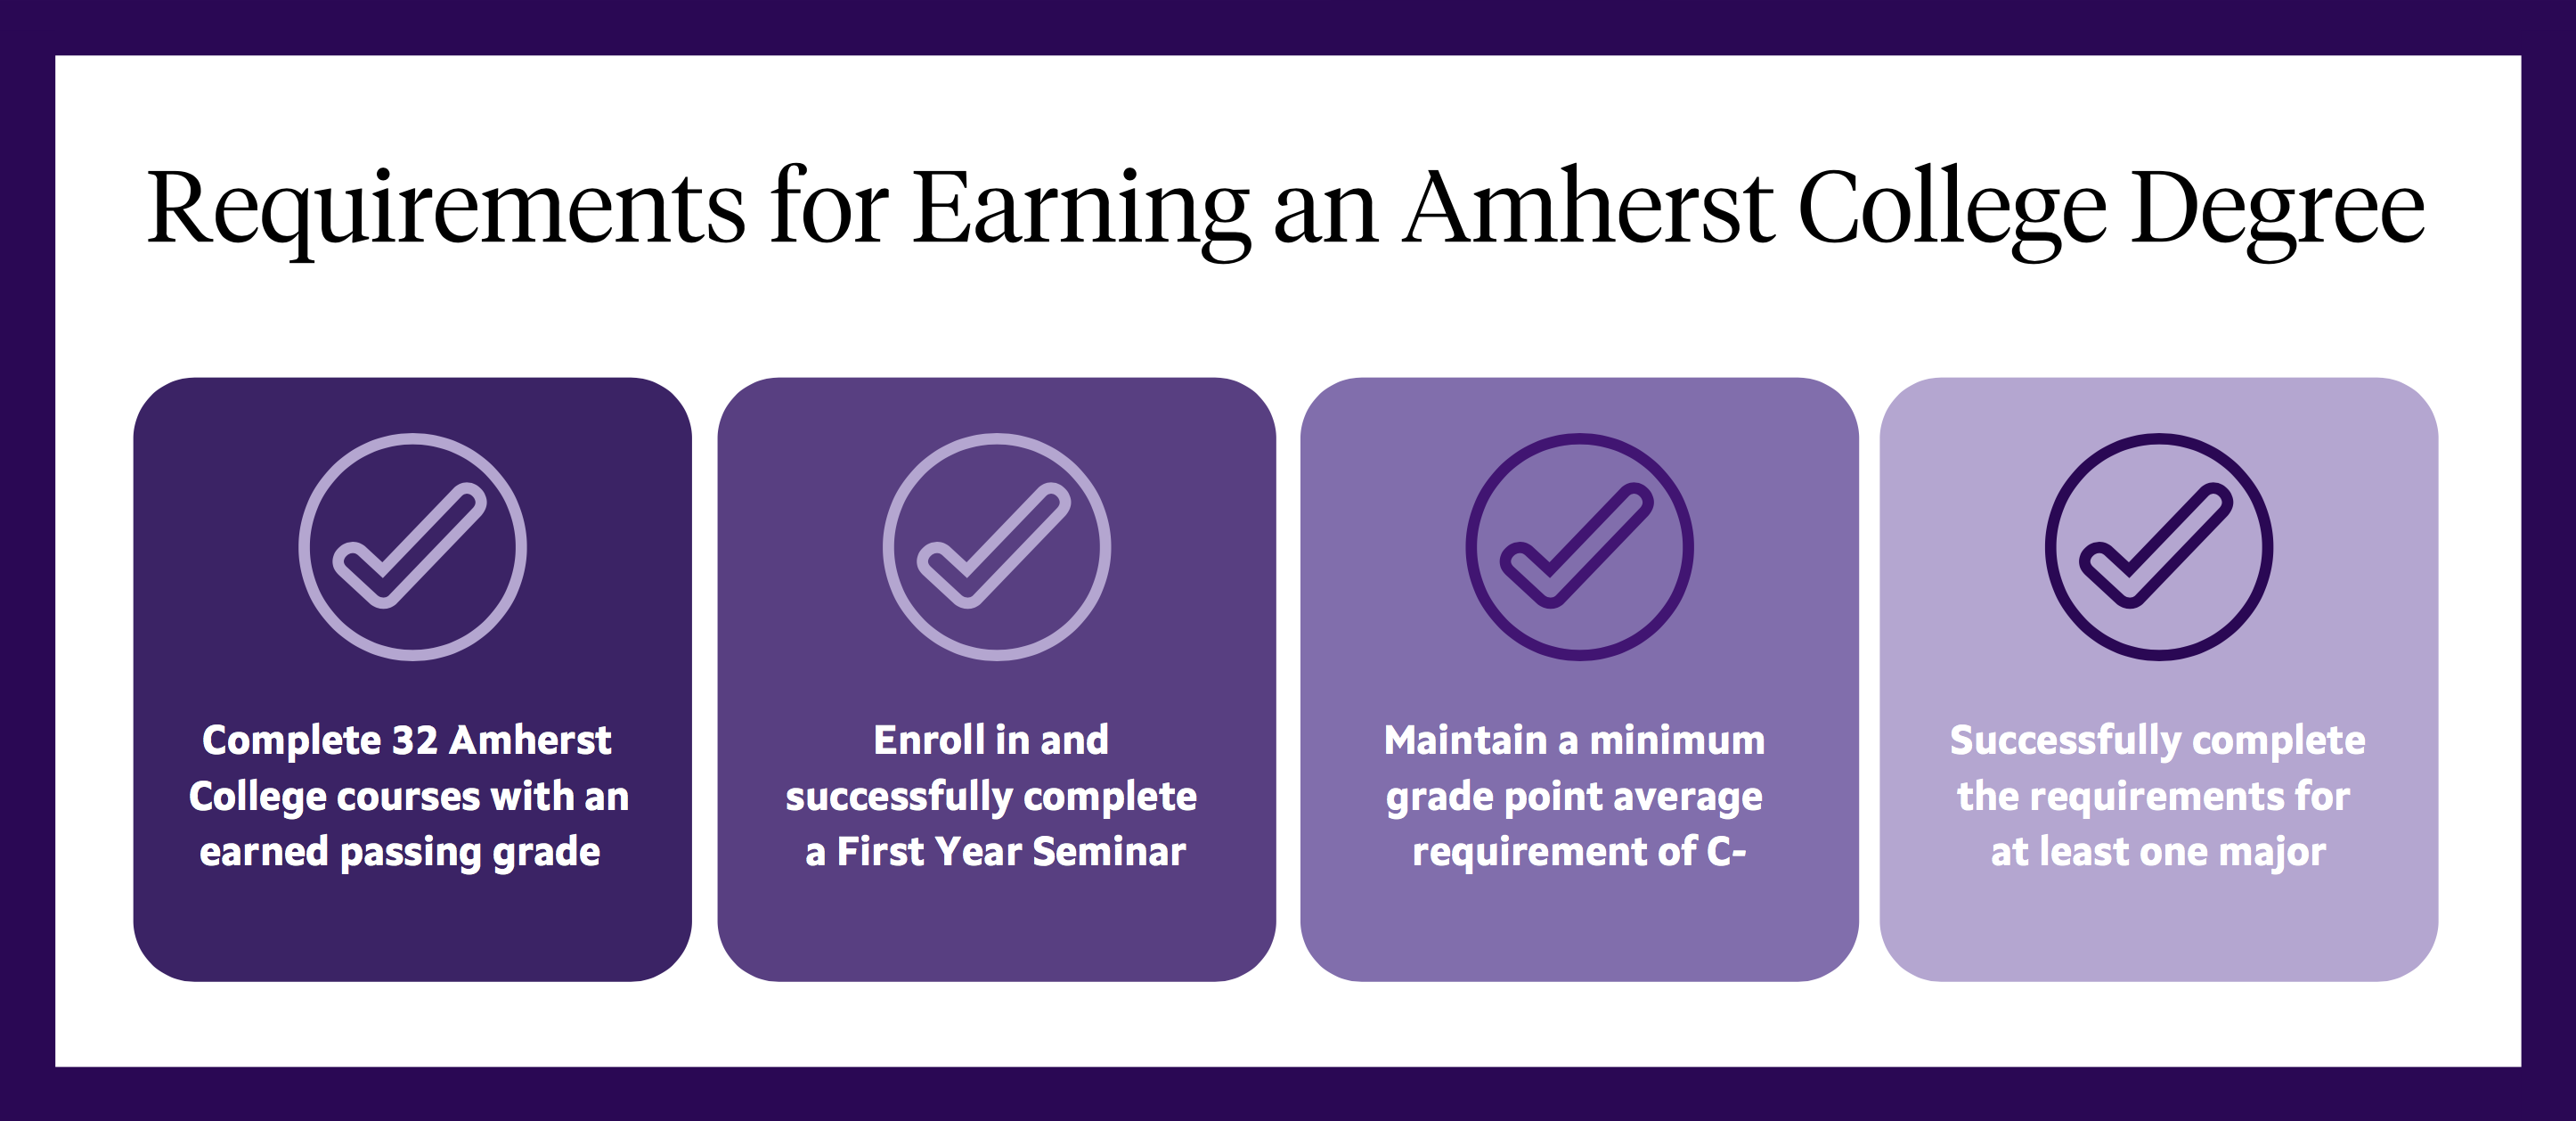 The four degree requirements for an Amherst College degree as outlined in the text on the page